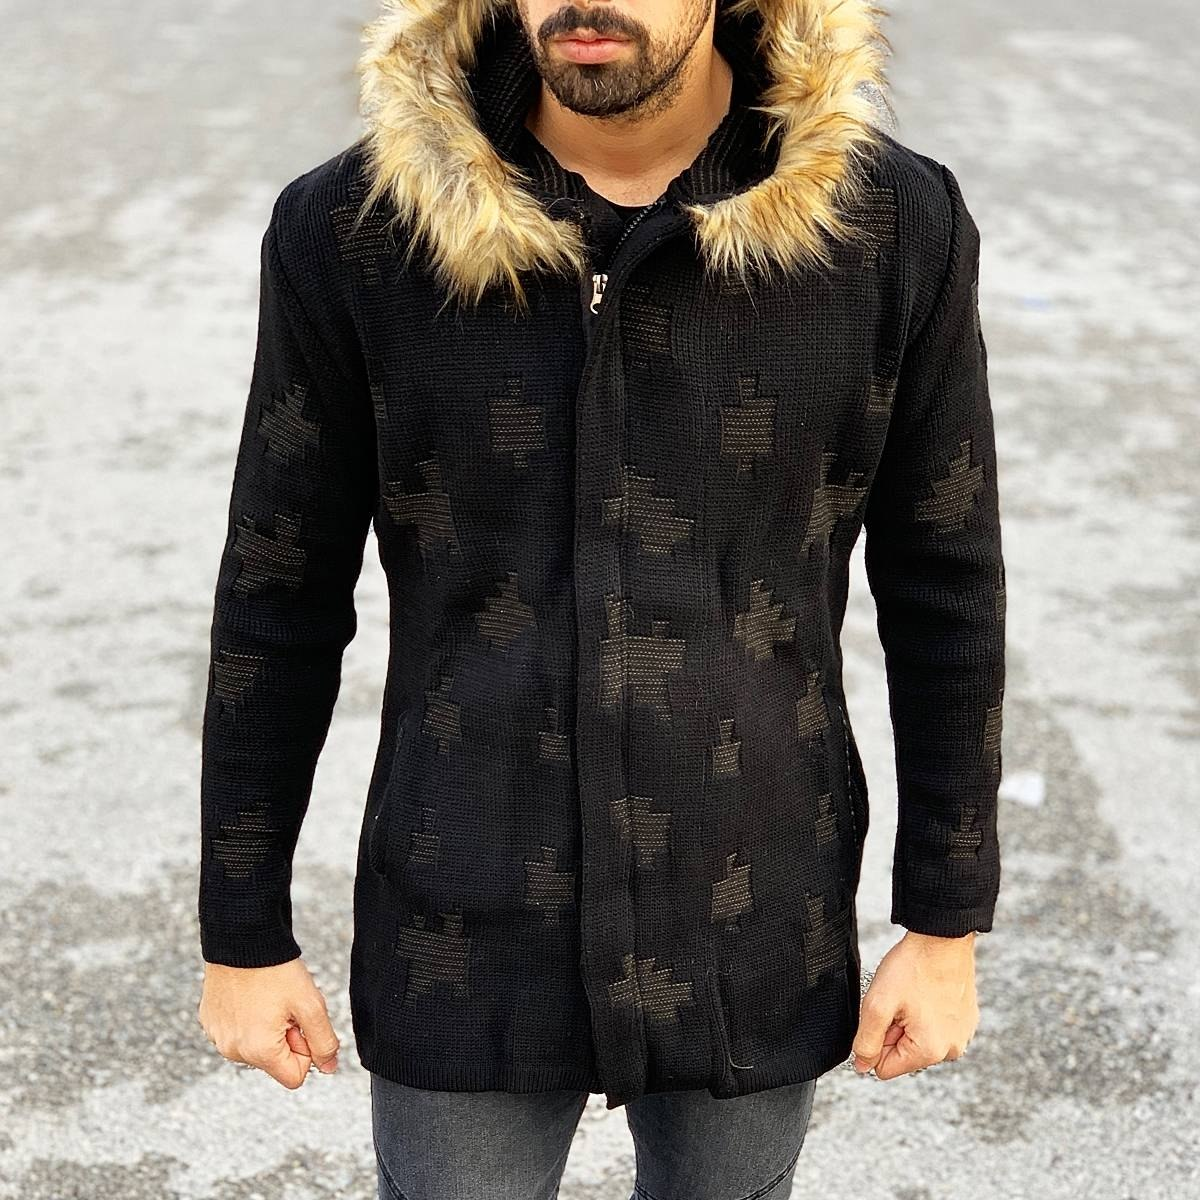 Patterned Fur-Hood Cardigan Jacket in Black Mv Premium Brand - 2